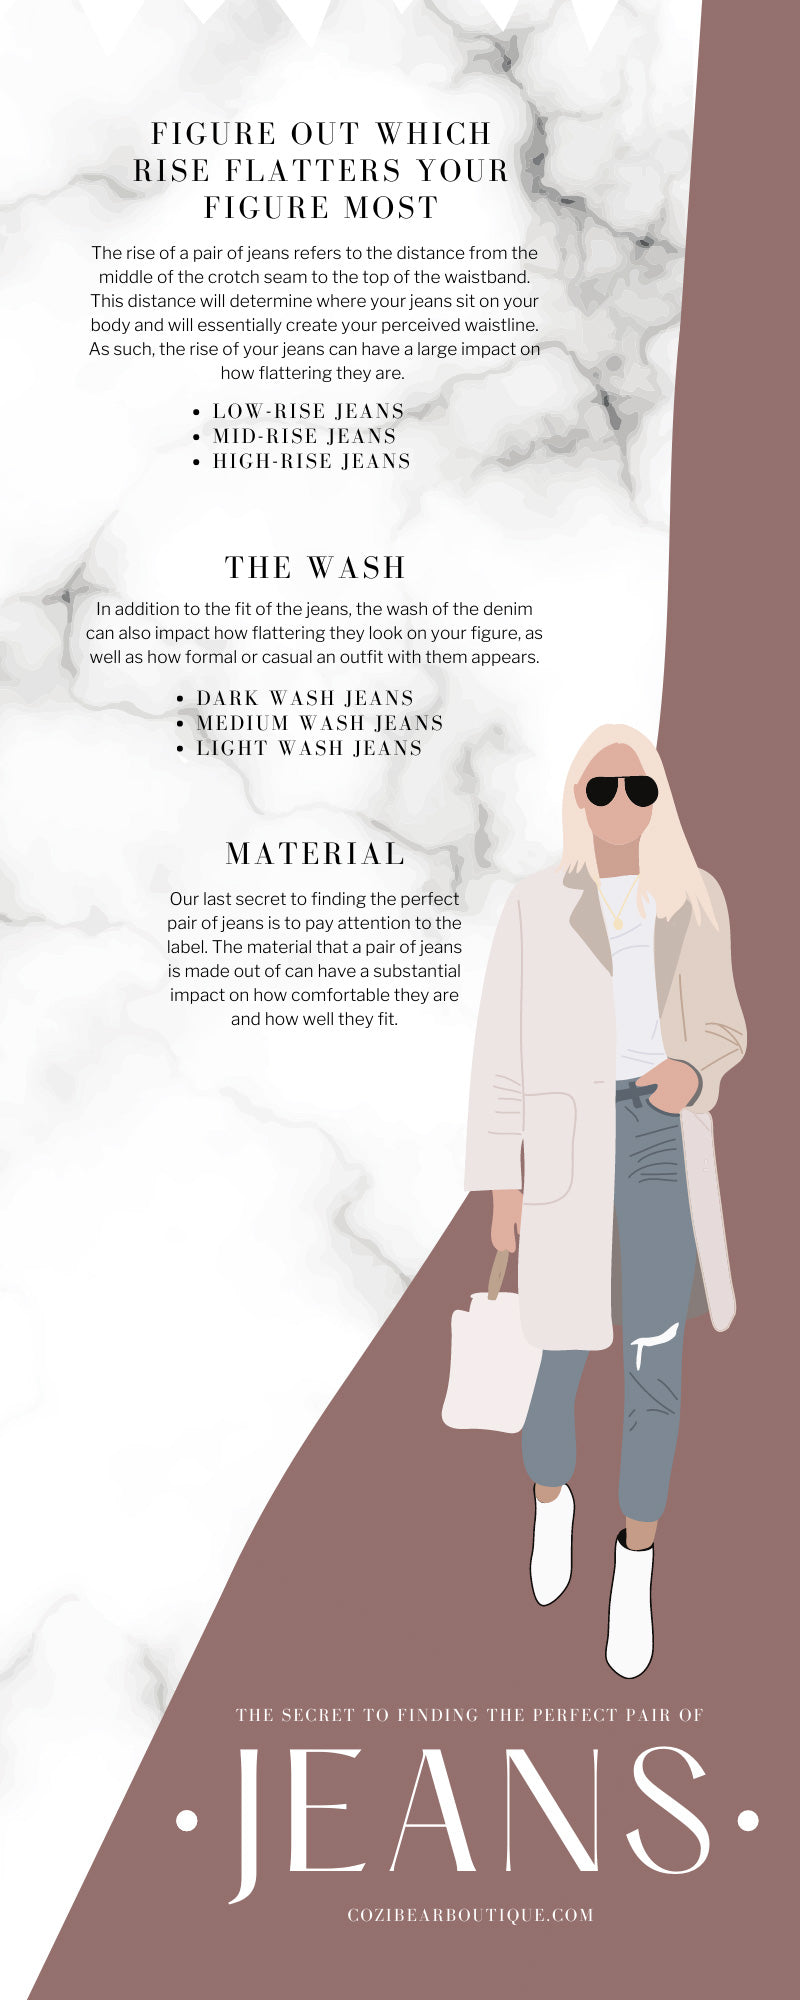 The Secret To Finding the Perfect Pair of Jeans